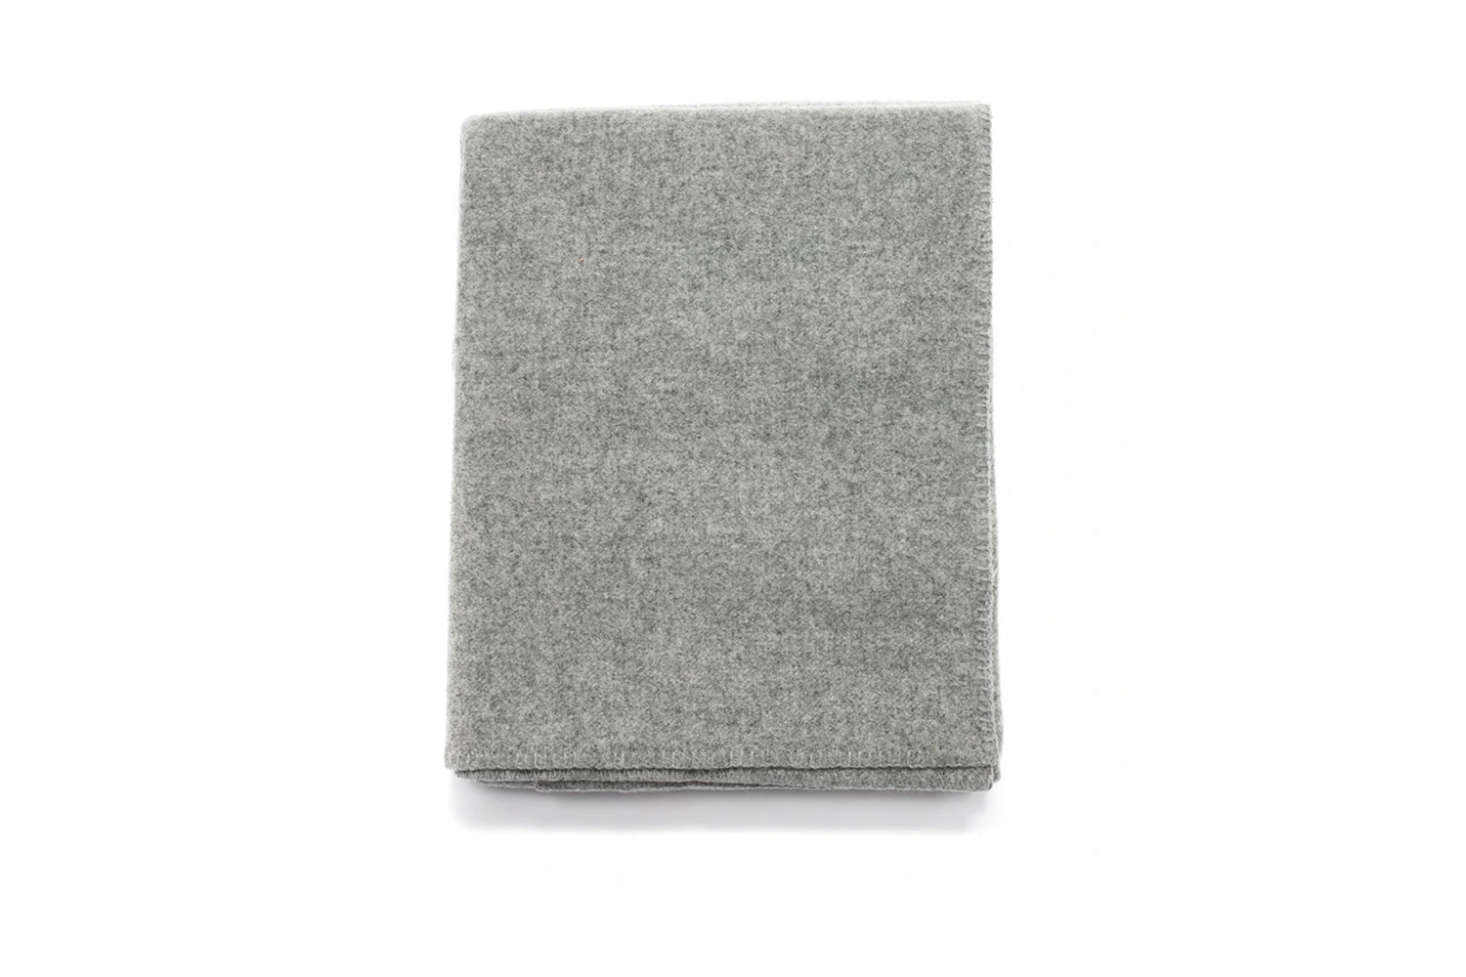 The Faribault Wool Blanket is a basic, everyday wool blanket great for the home or for camping; $